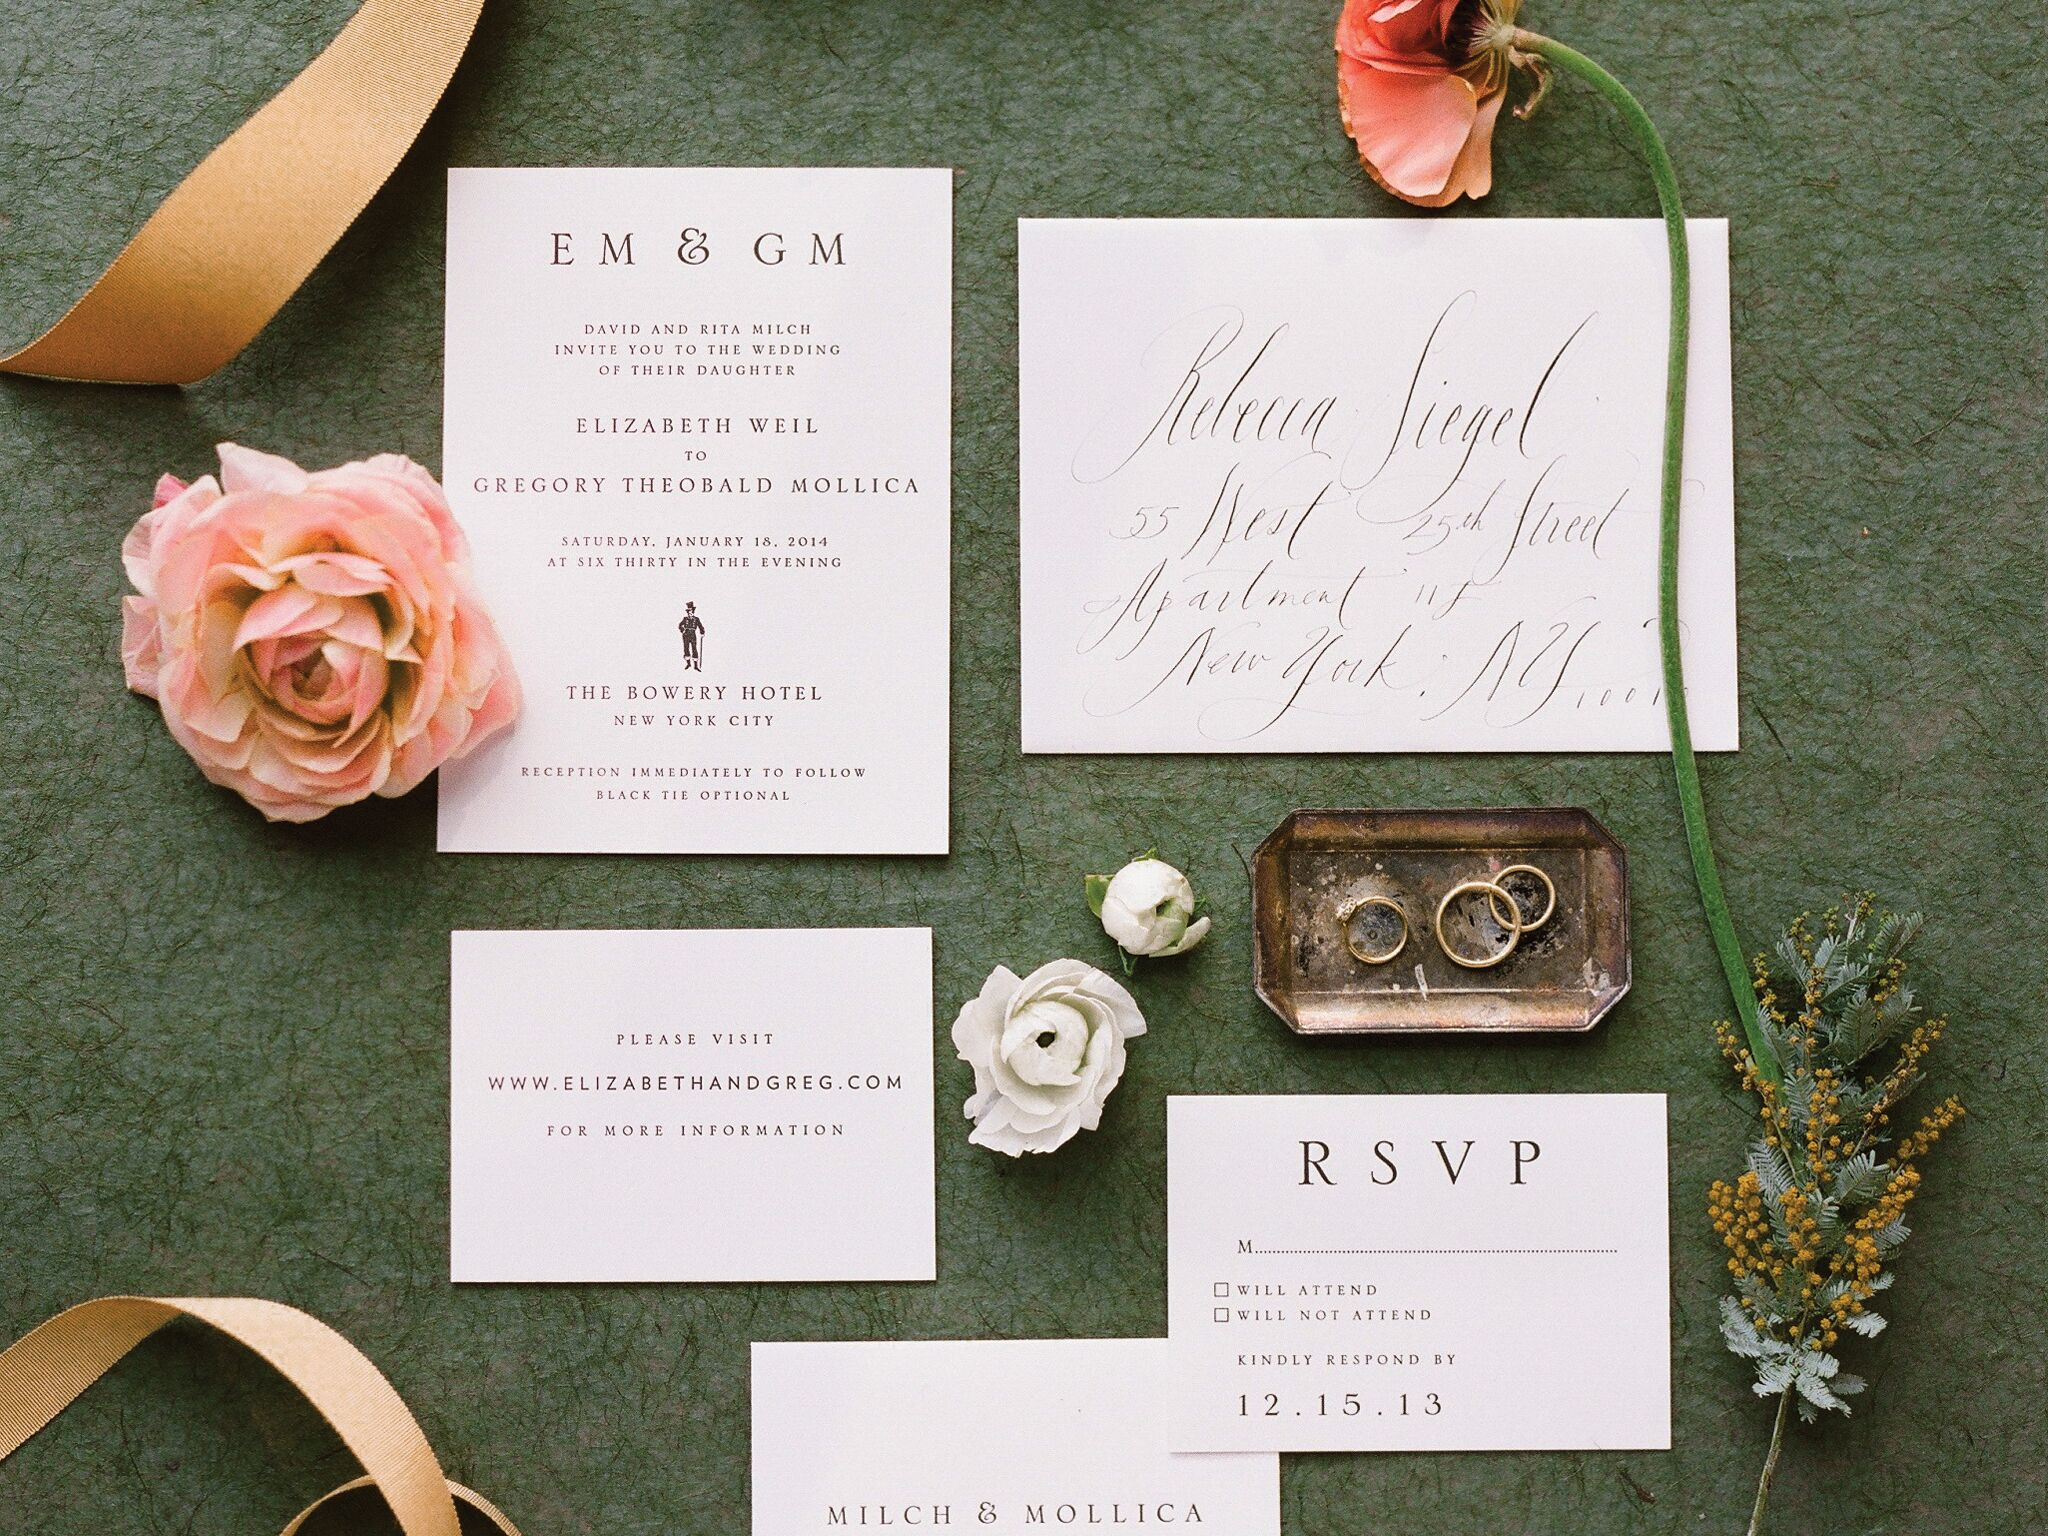 Wedding Invite Etiquette Wording: Top 10 Wedding Invitation Etiquette Questions